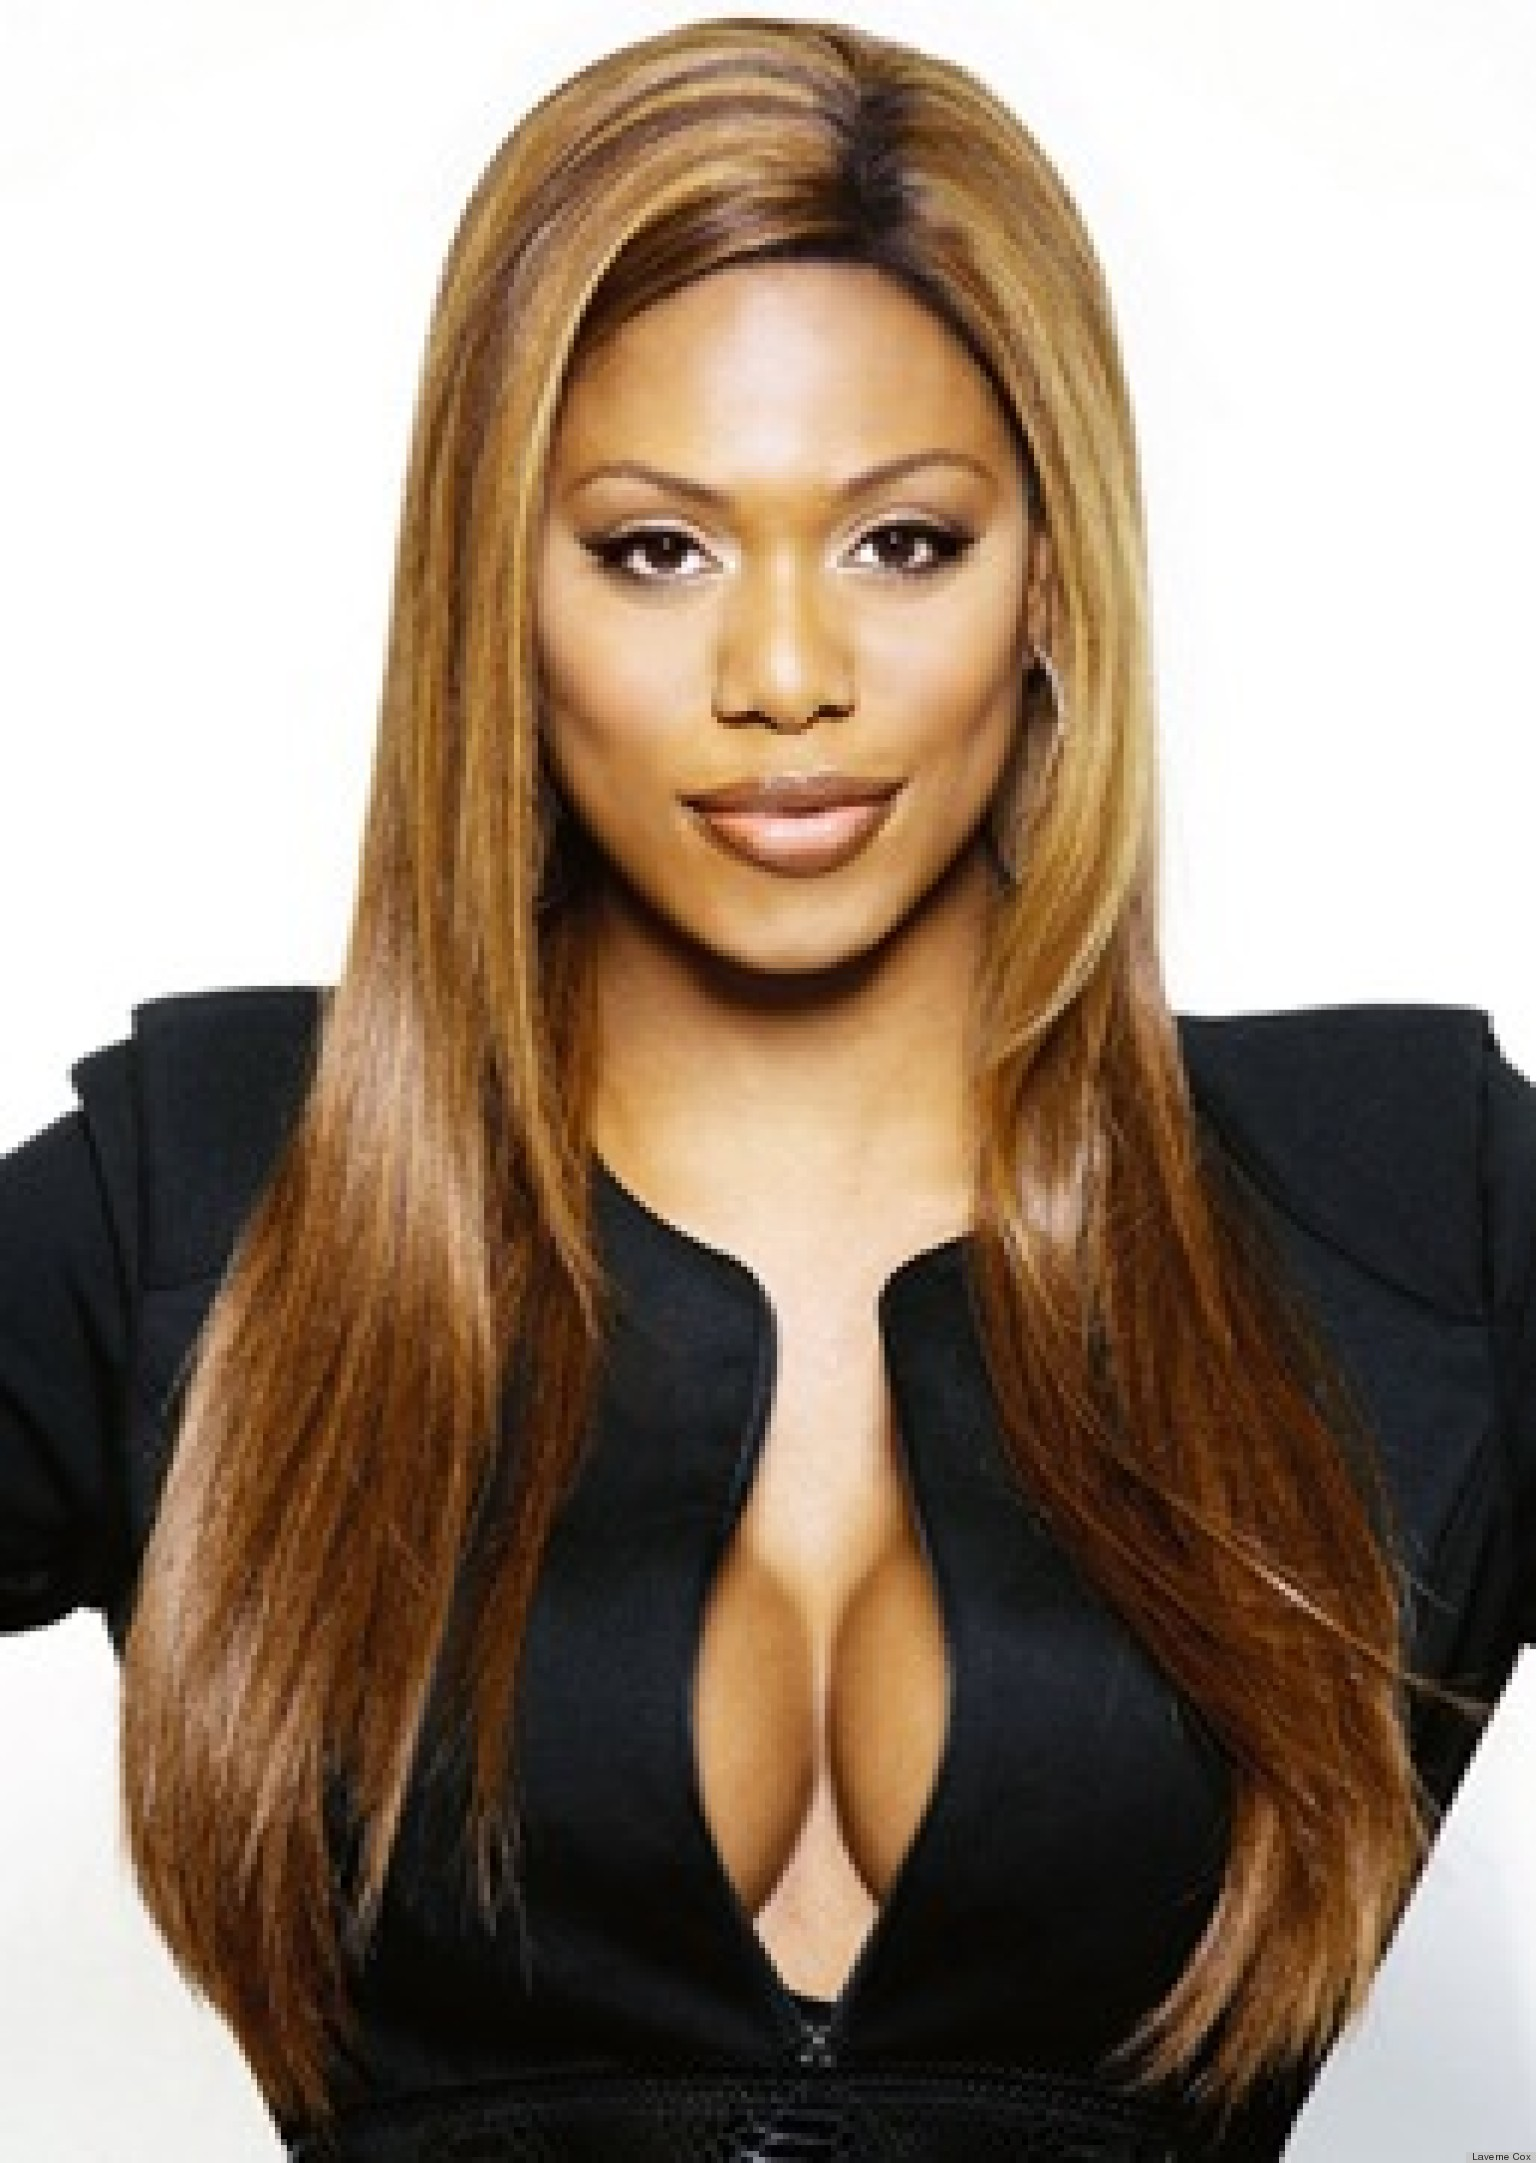 Laverne Cox, Actress And Trans Activist, Discusses Her New